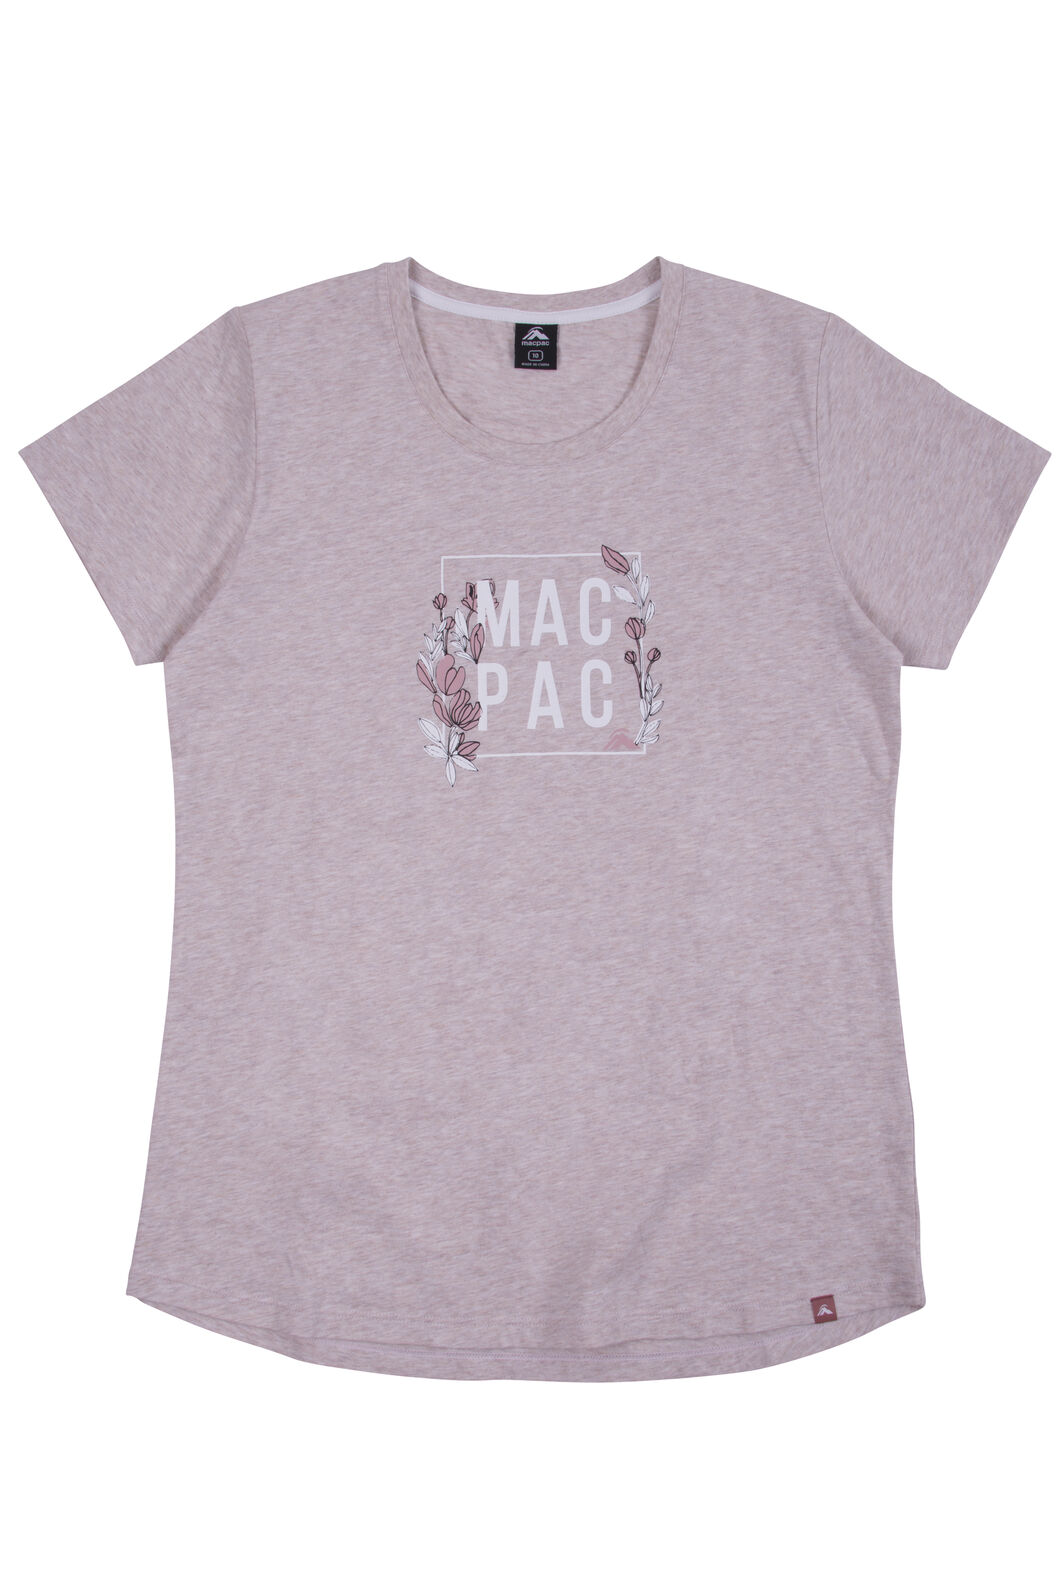 Macpac Cubed Organic Cotton Tee - Women's, Misty Rose Melange, hi-res